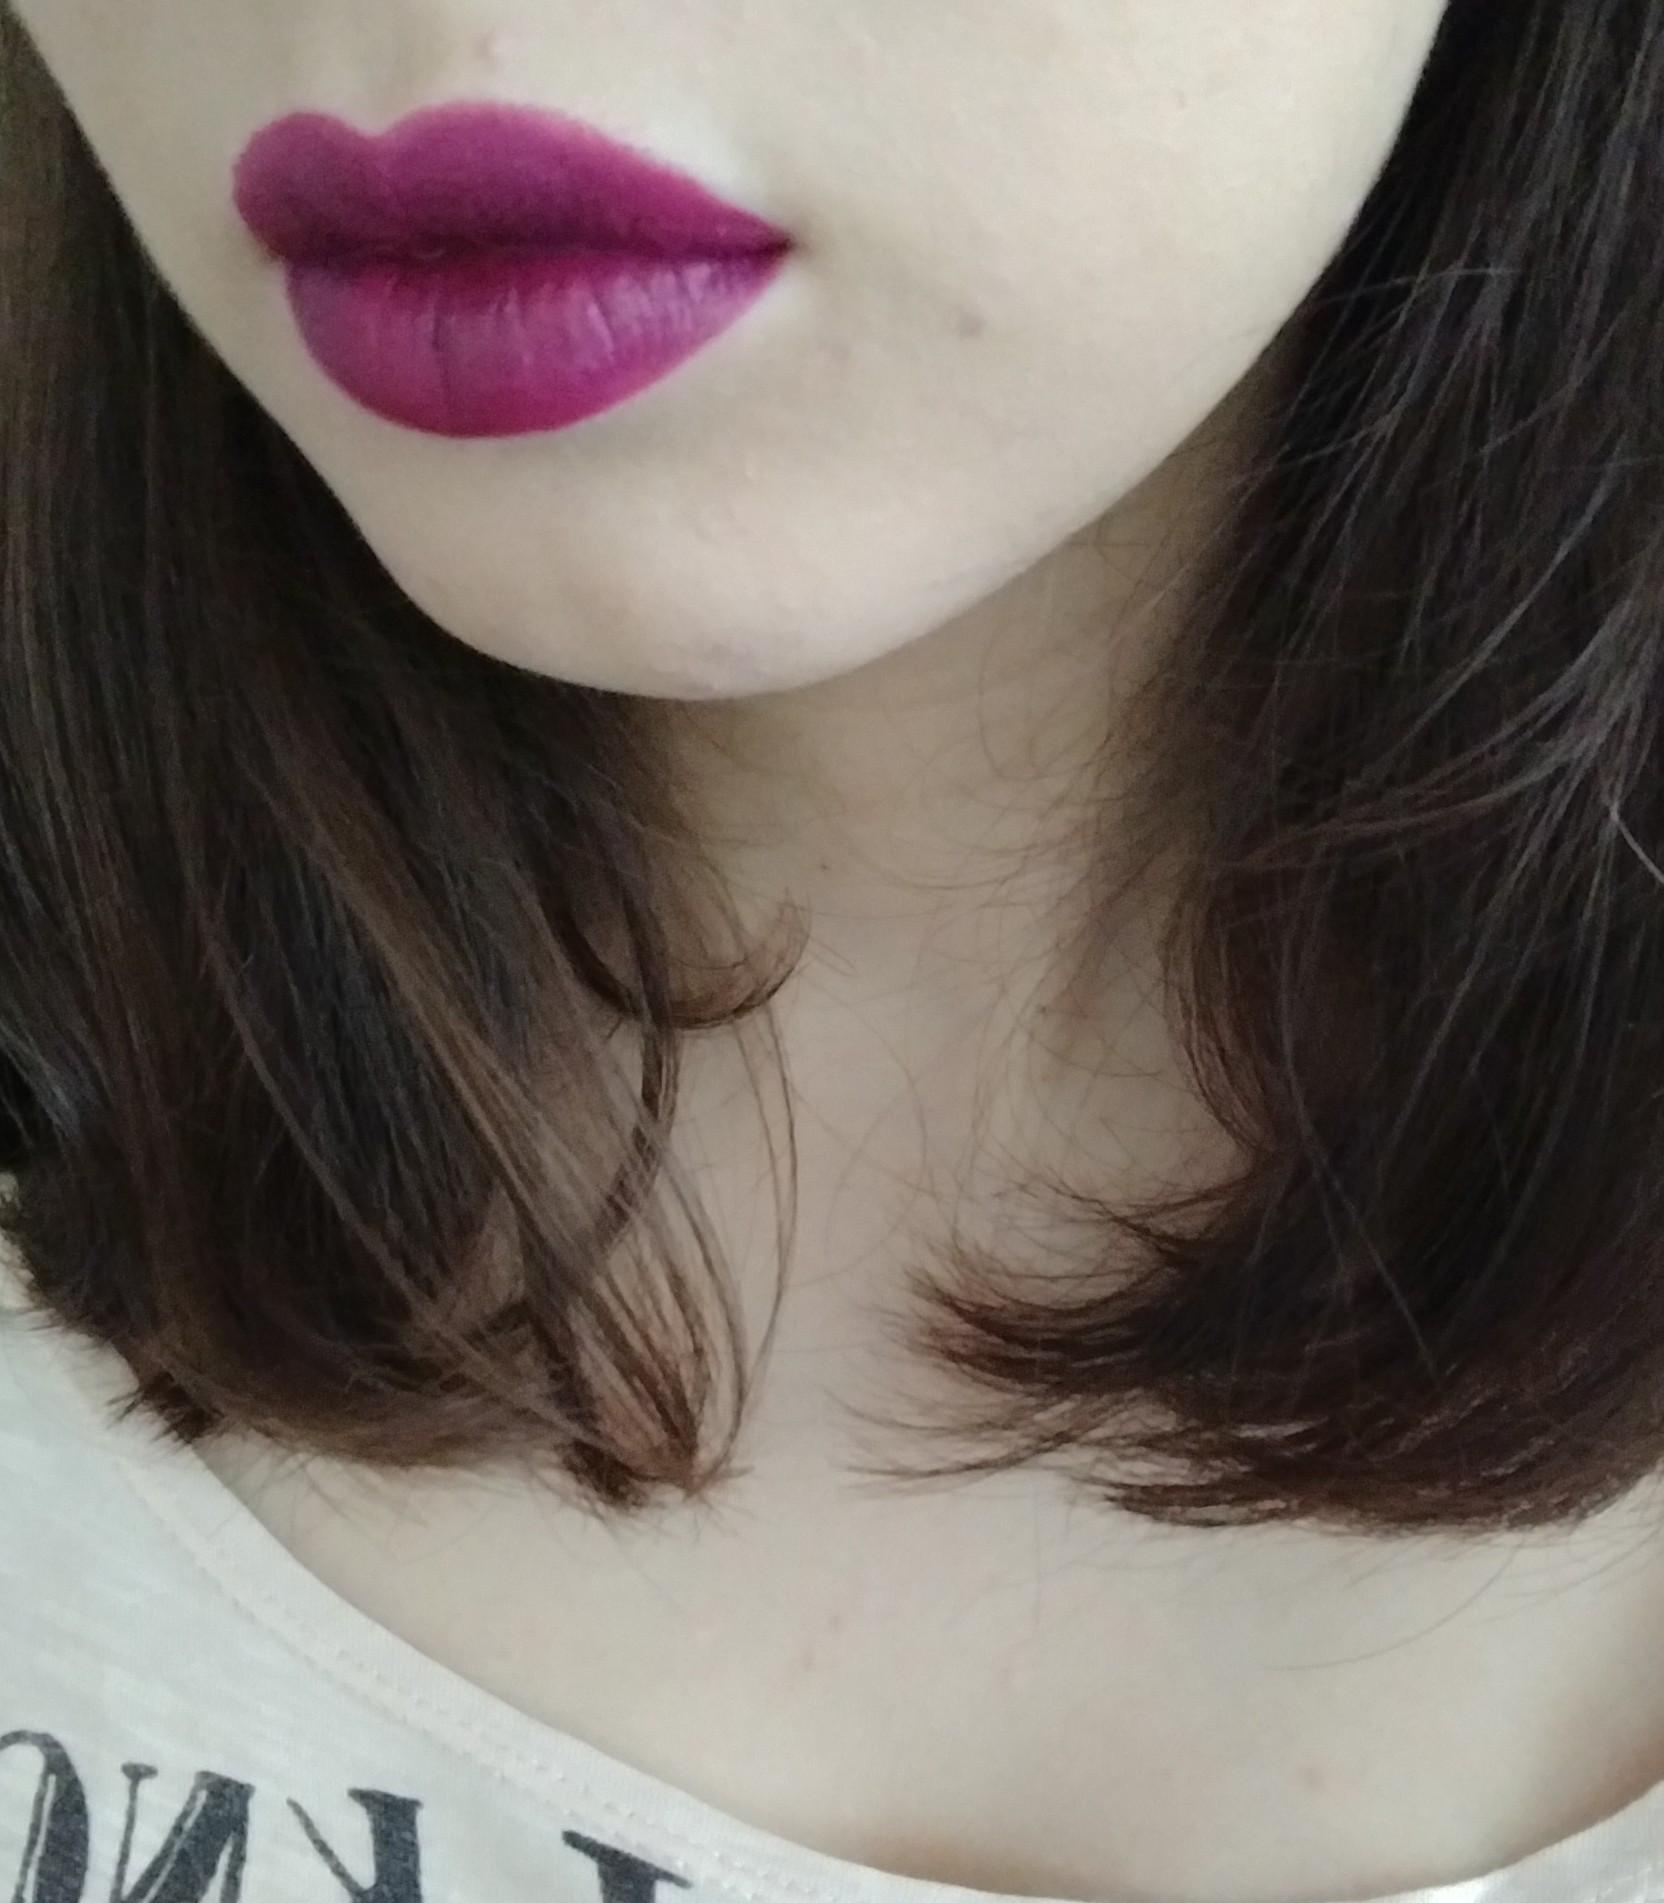 Maybelline Color Sensational Creamy Matte Ruj 886 Berry Bossy